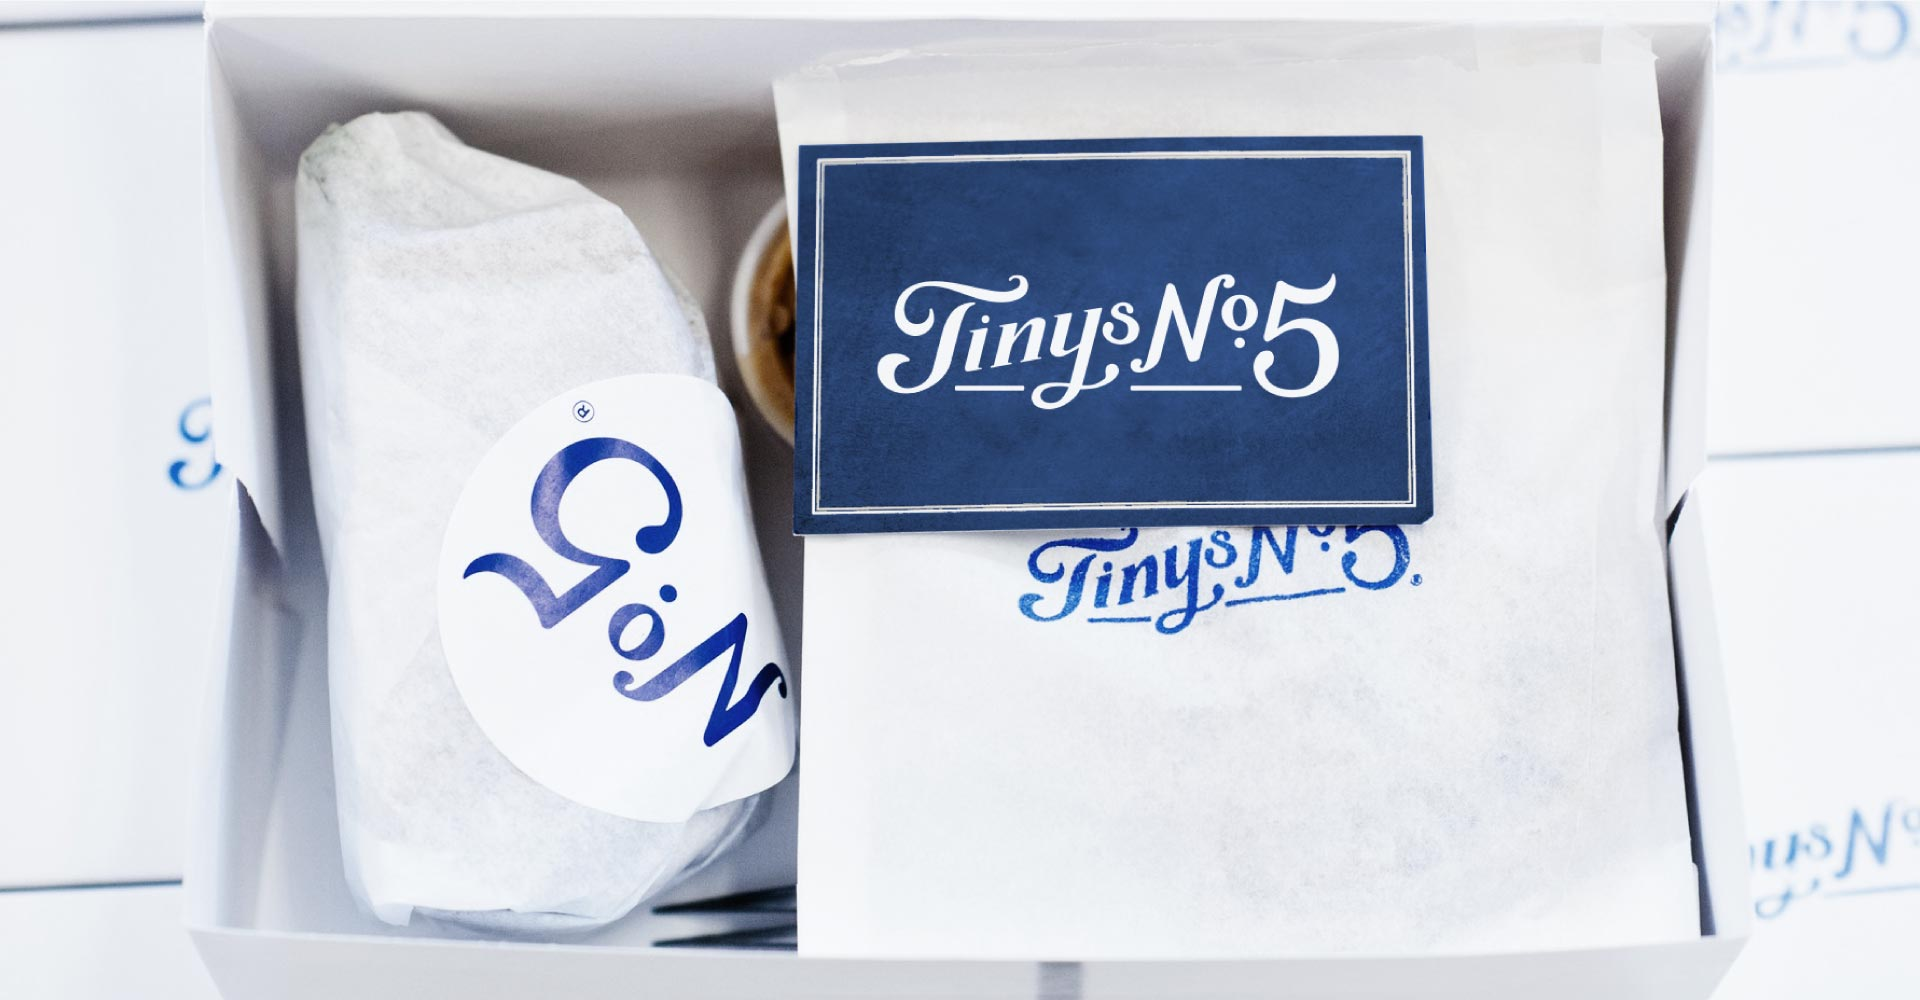 Creative_Retail_Packaging_Branding_Identity_Design_TinyBoxwoodProductions_18.jpg